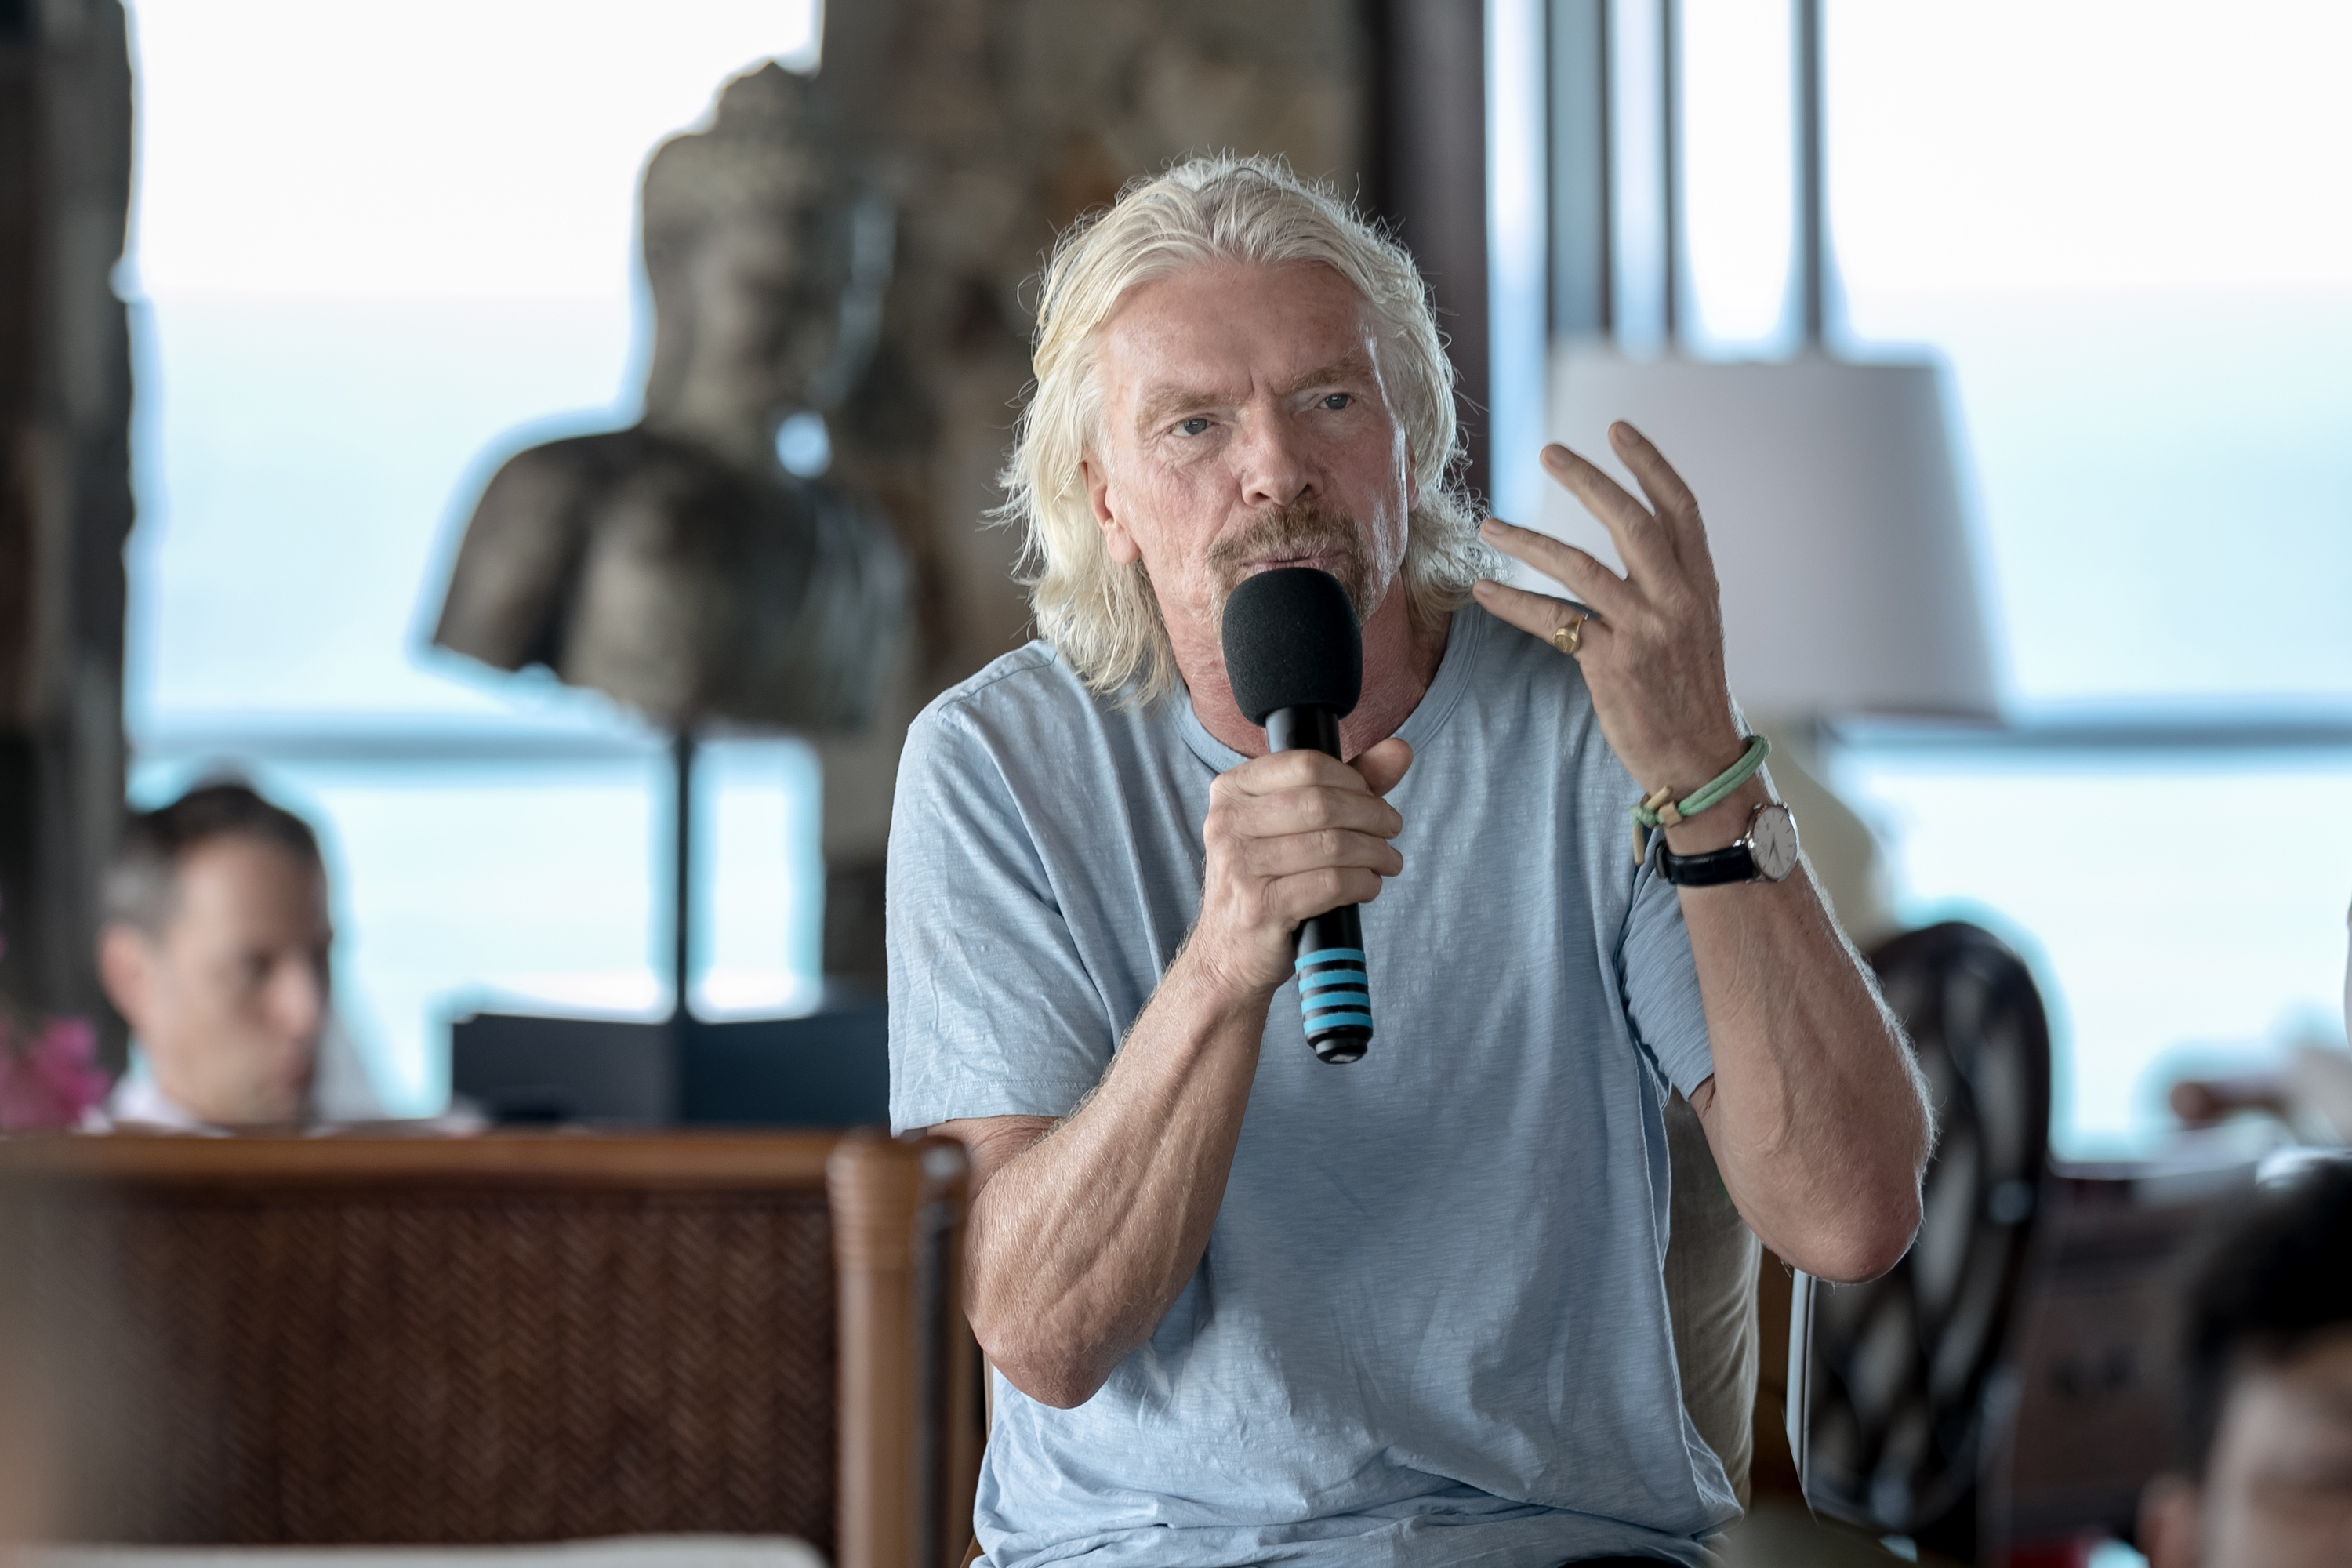 Sir Richard Branson wearing goggles riding a foilboard with a kite at sea